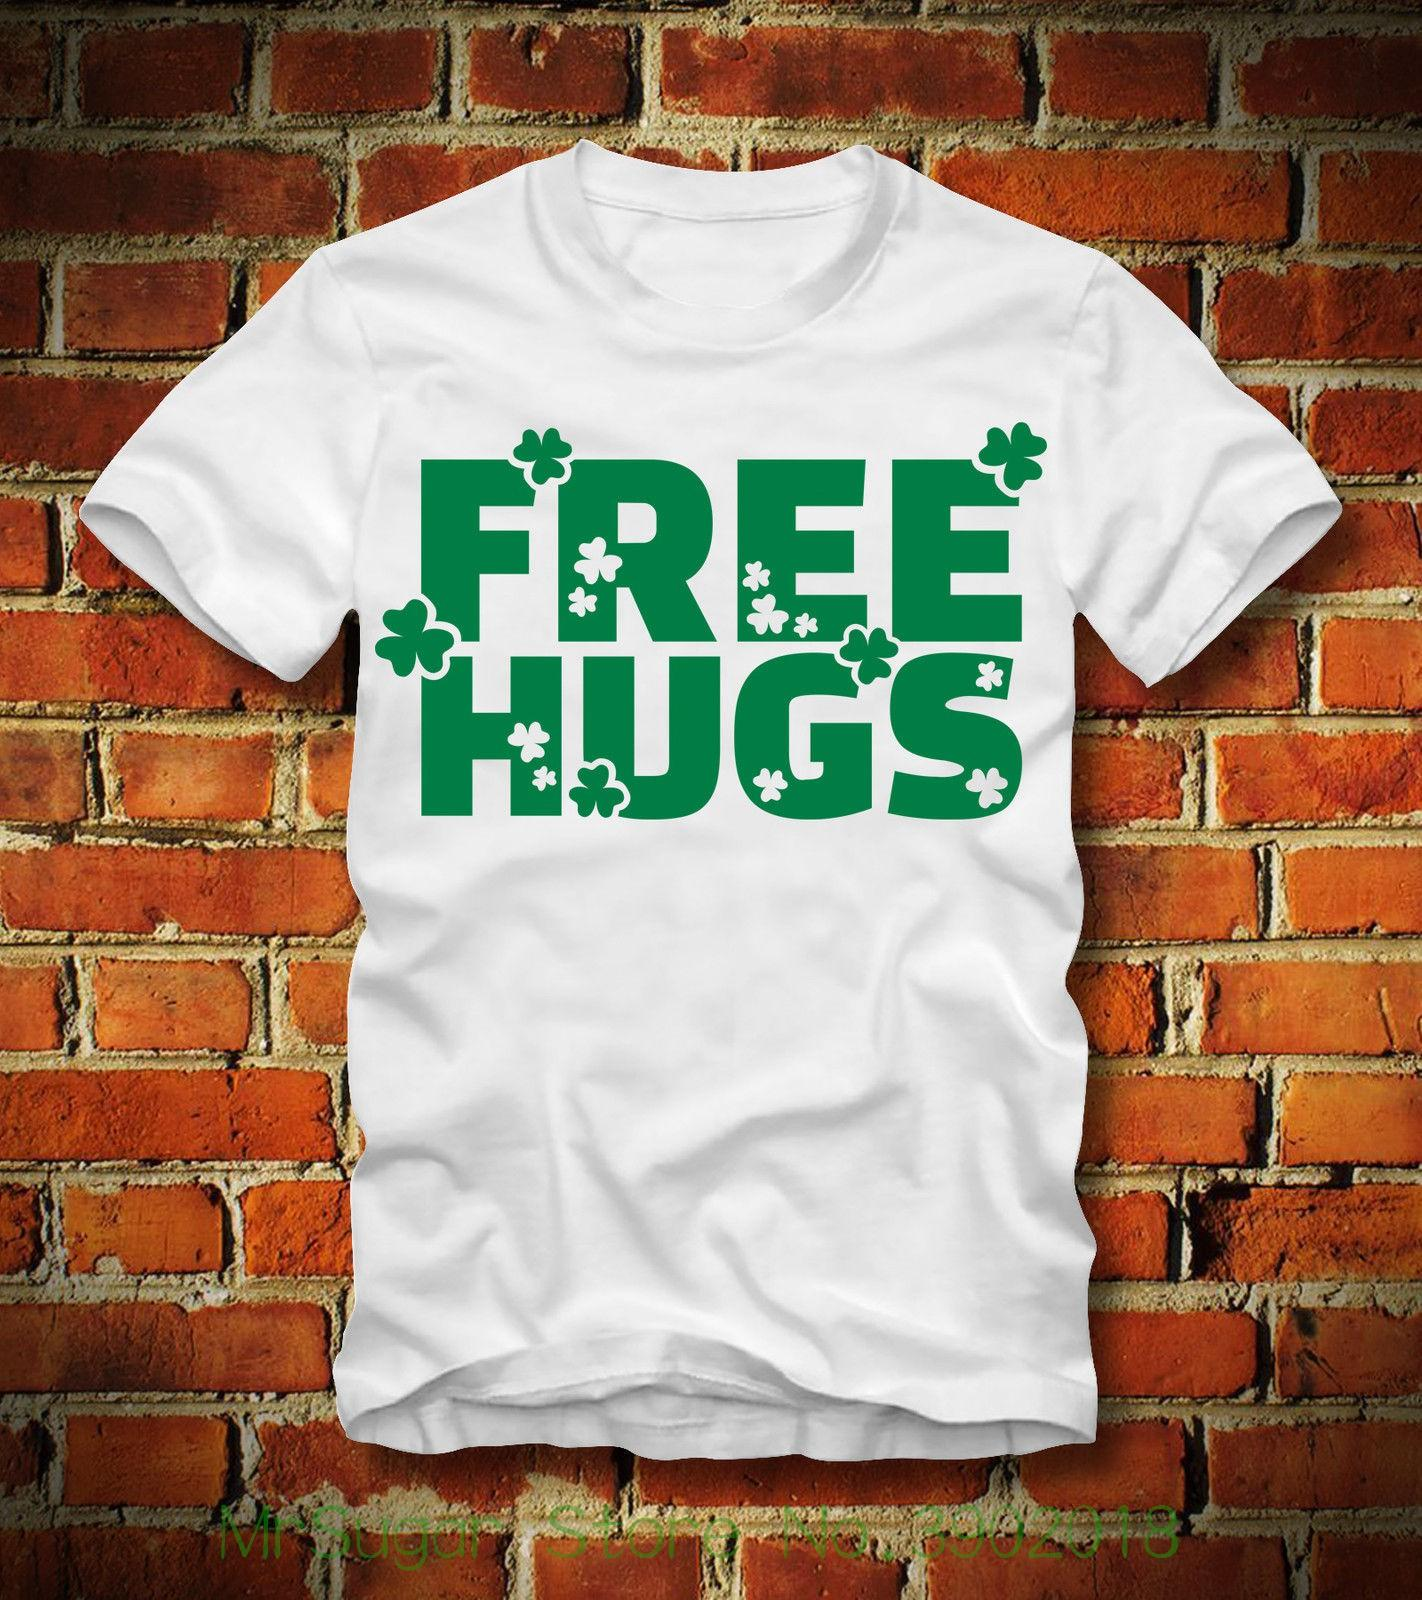 993598a9bd4 Boardrippaz T Shirt Free Hugs St. Patricks Day Irland Ireland Kleeblatt  Shamrock T Shirt Gift More Size And Colors Online with  18.15 Piece on ...